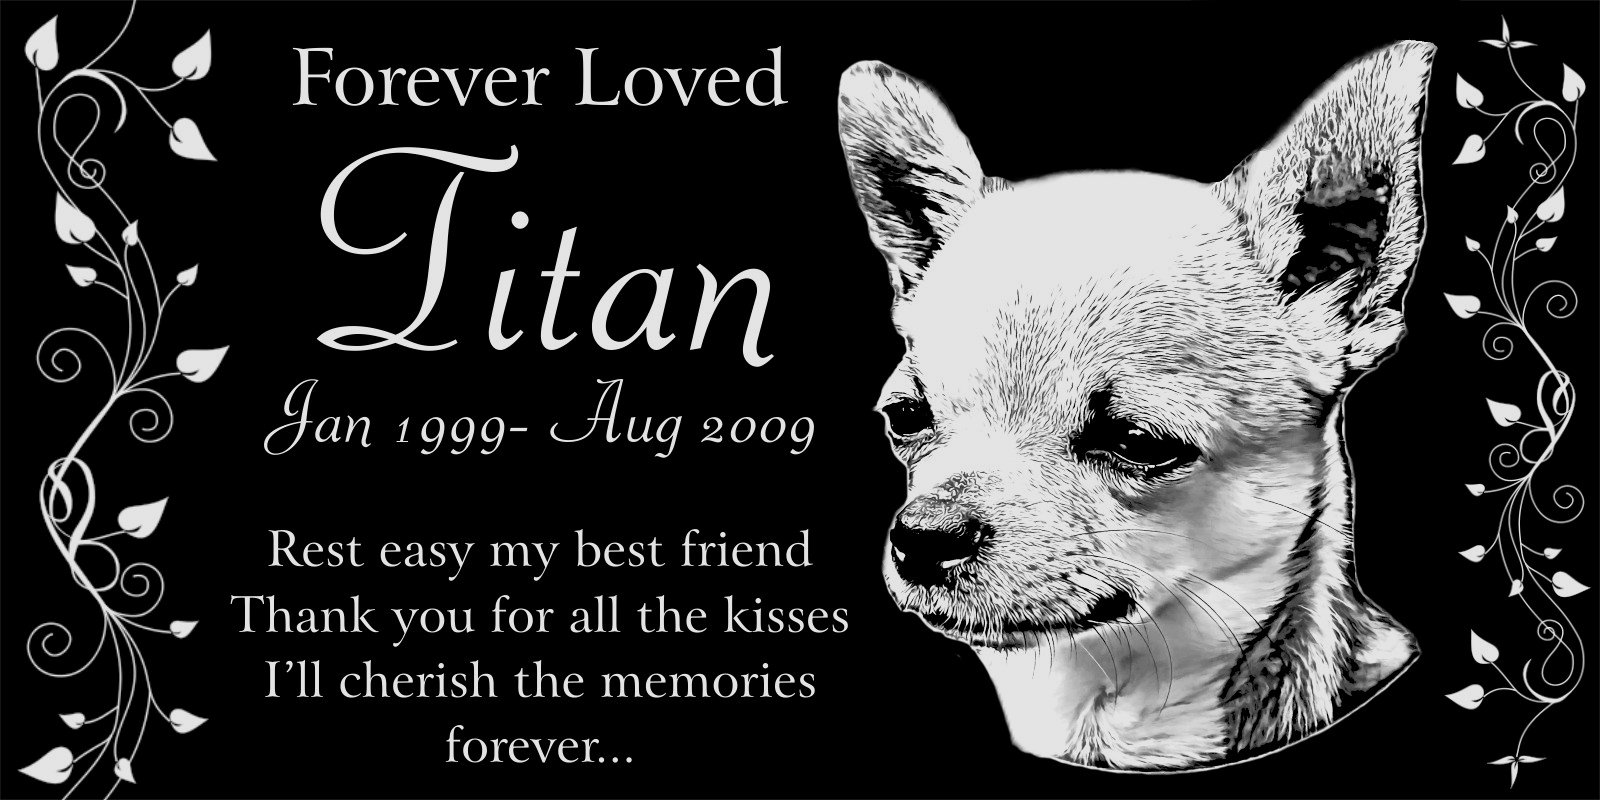 Personalized Chihuahua Dog Pet Memorial 12''x6'' Engraved Black Granite Grave Marker Head Stone Plaque TIT1